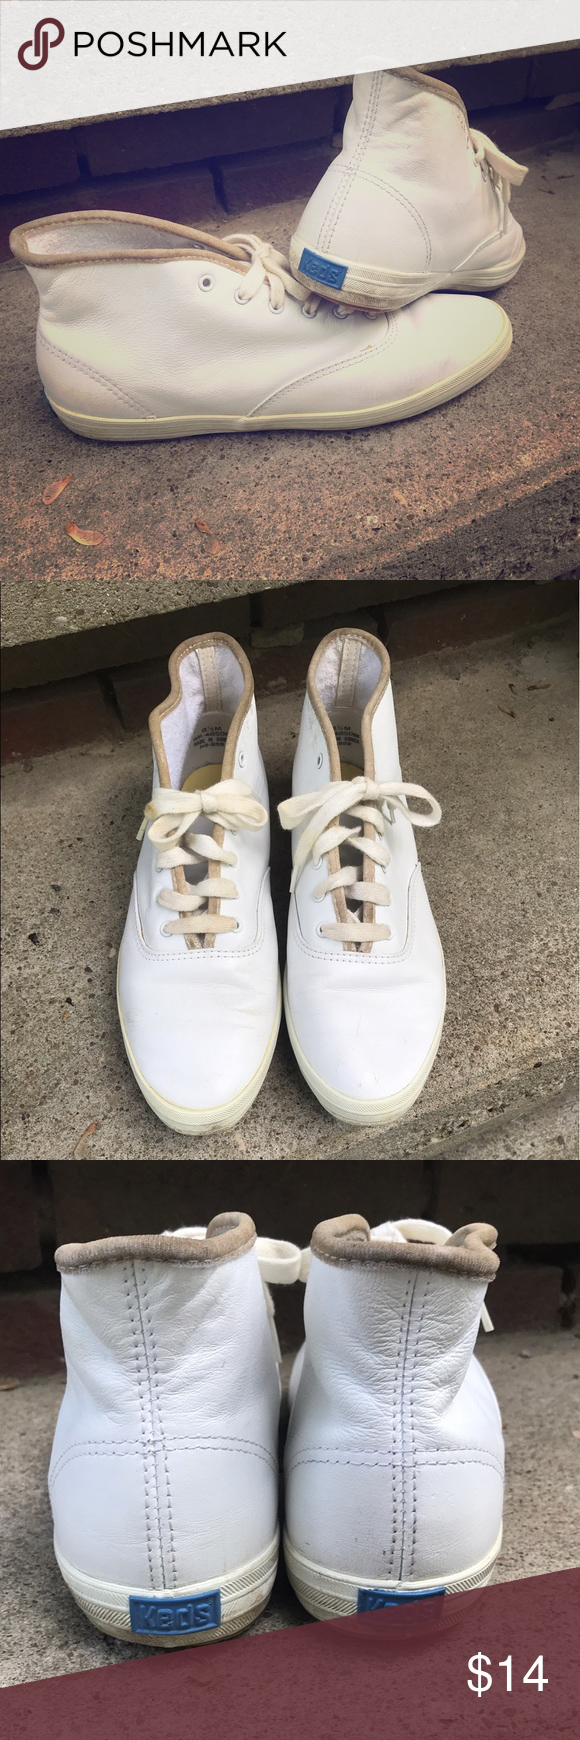 Vintage White Leather High Top Keds